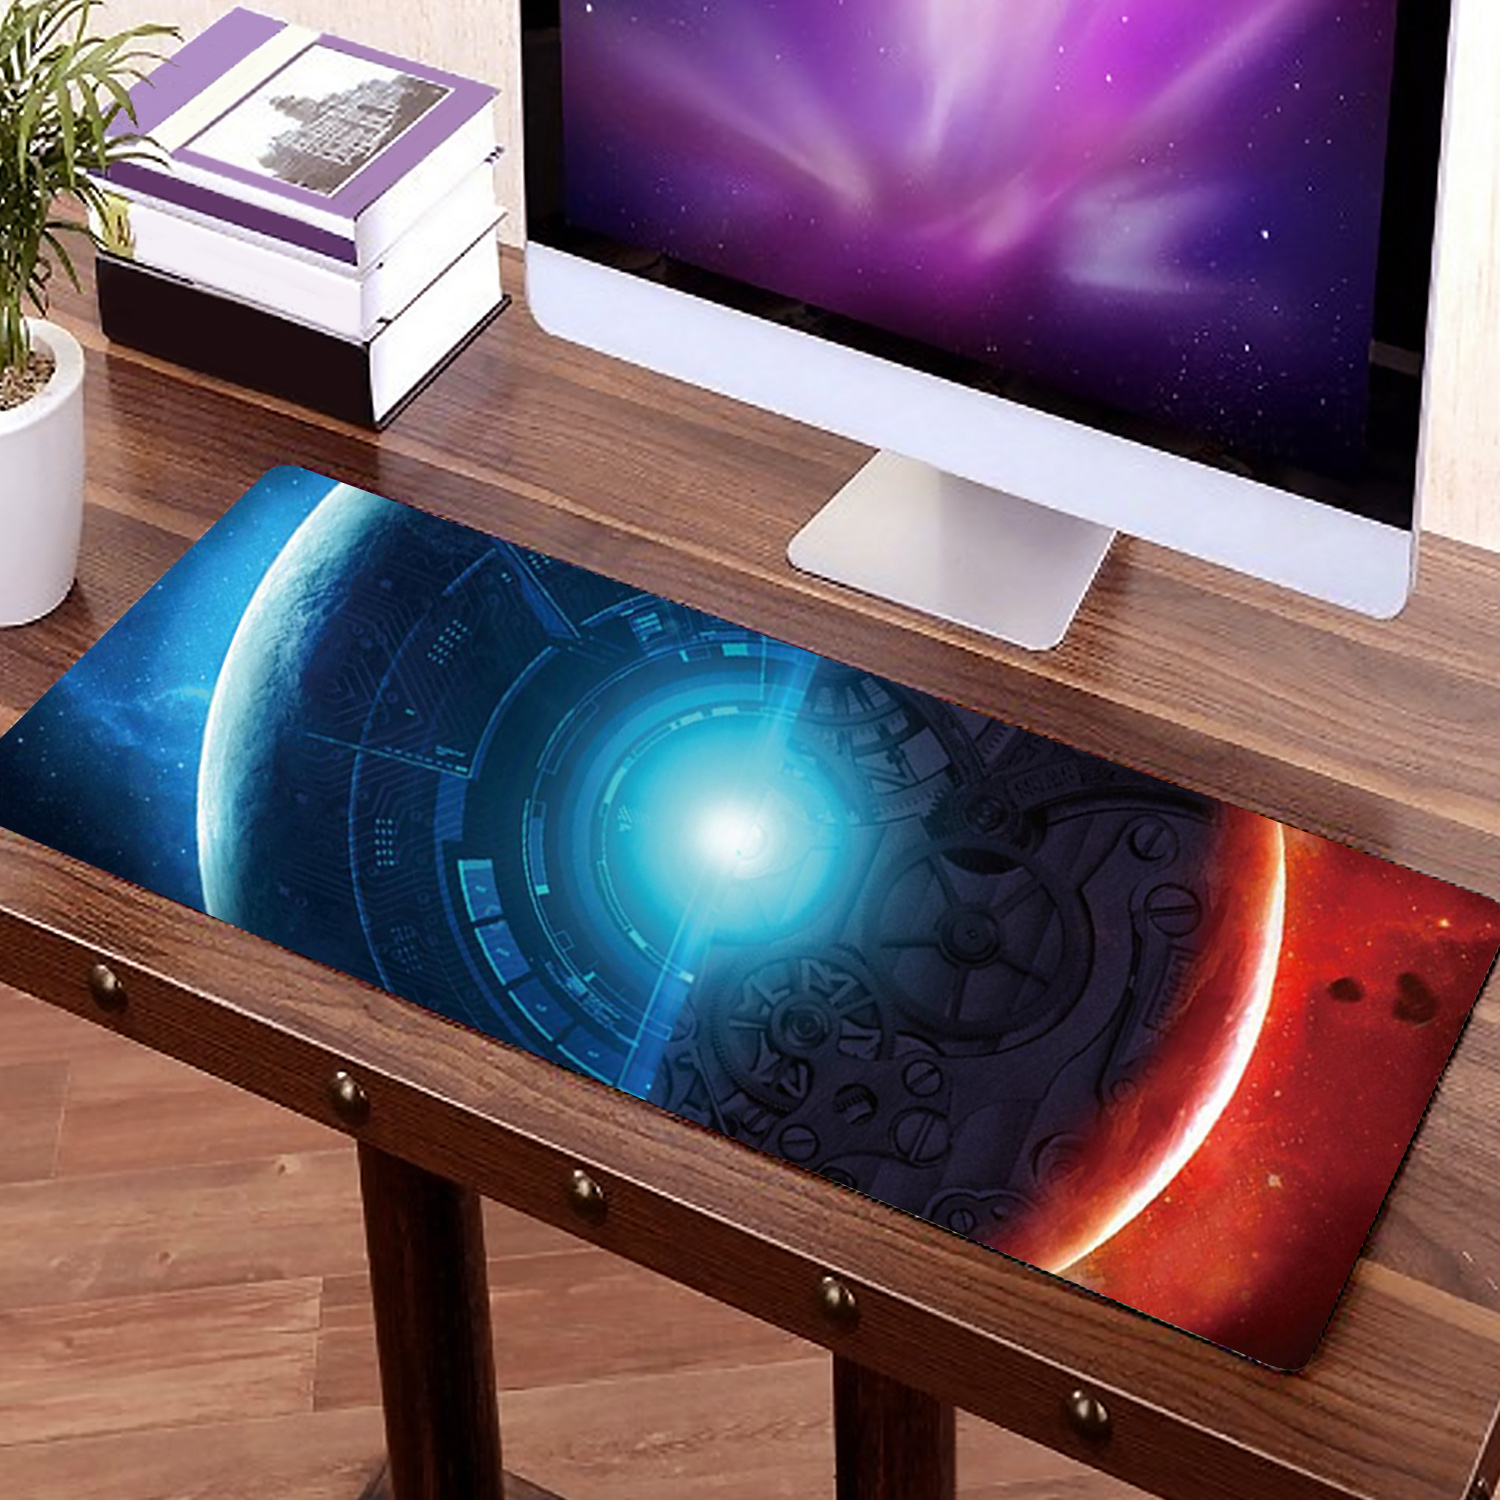 Besegad 40 X 90cm Large Size Star Non-Slip Rubber Gaming Mousepad Mouse Pad Non-Slip Laptop Computer Mice Mat For LOL DOTA Gamer